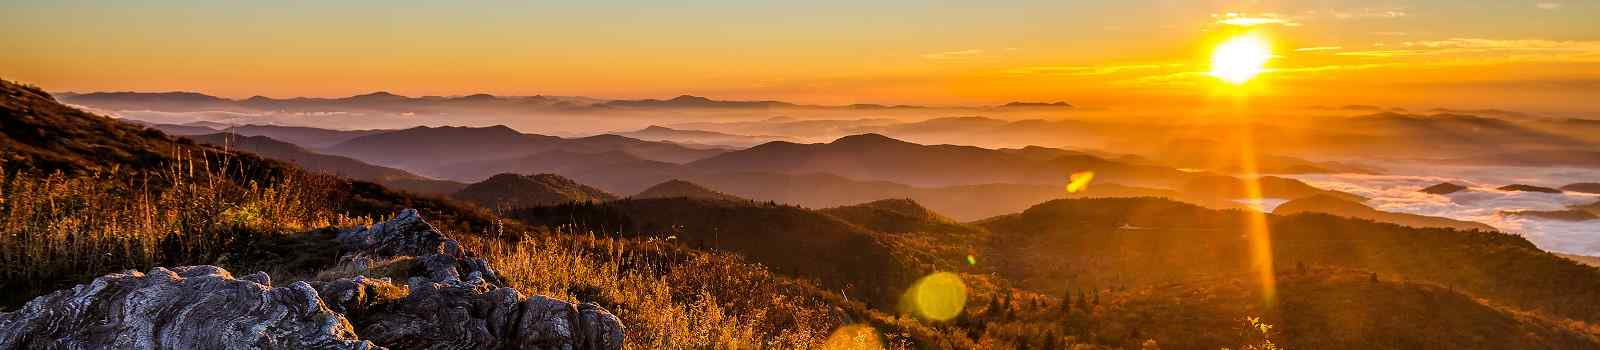 KL-USA-APPALACHIAN  Ein goldener Sturz Sonnenaufgang ueber den Blue Ridge Mountains von der Black Balsam Bald in North Carolina shutterstock 225597796